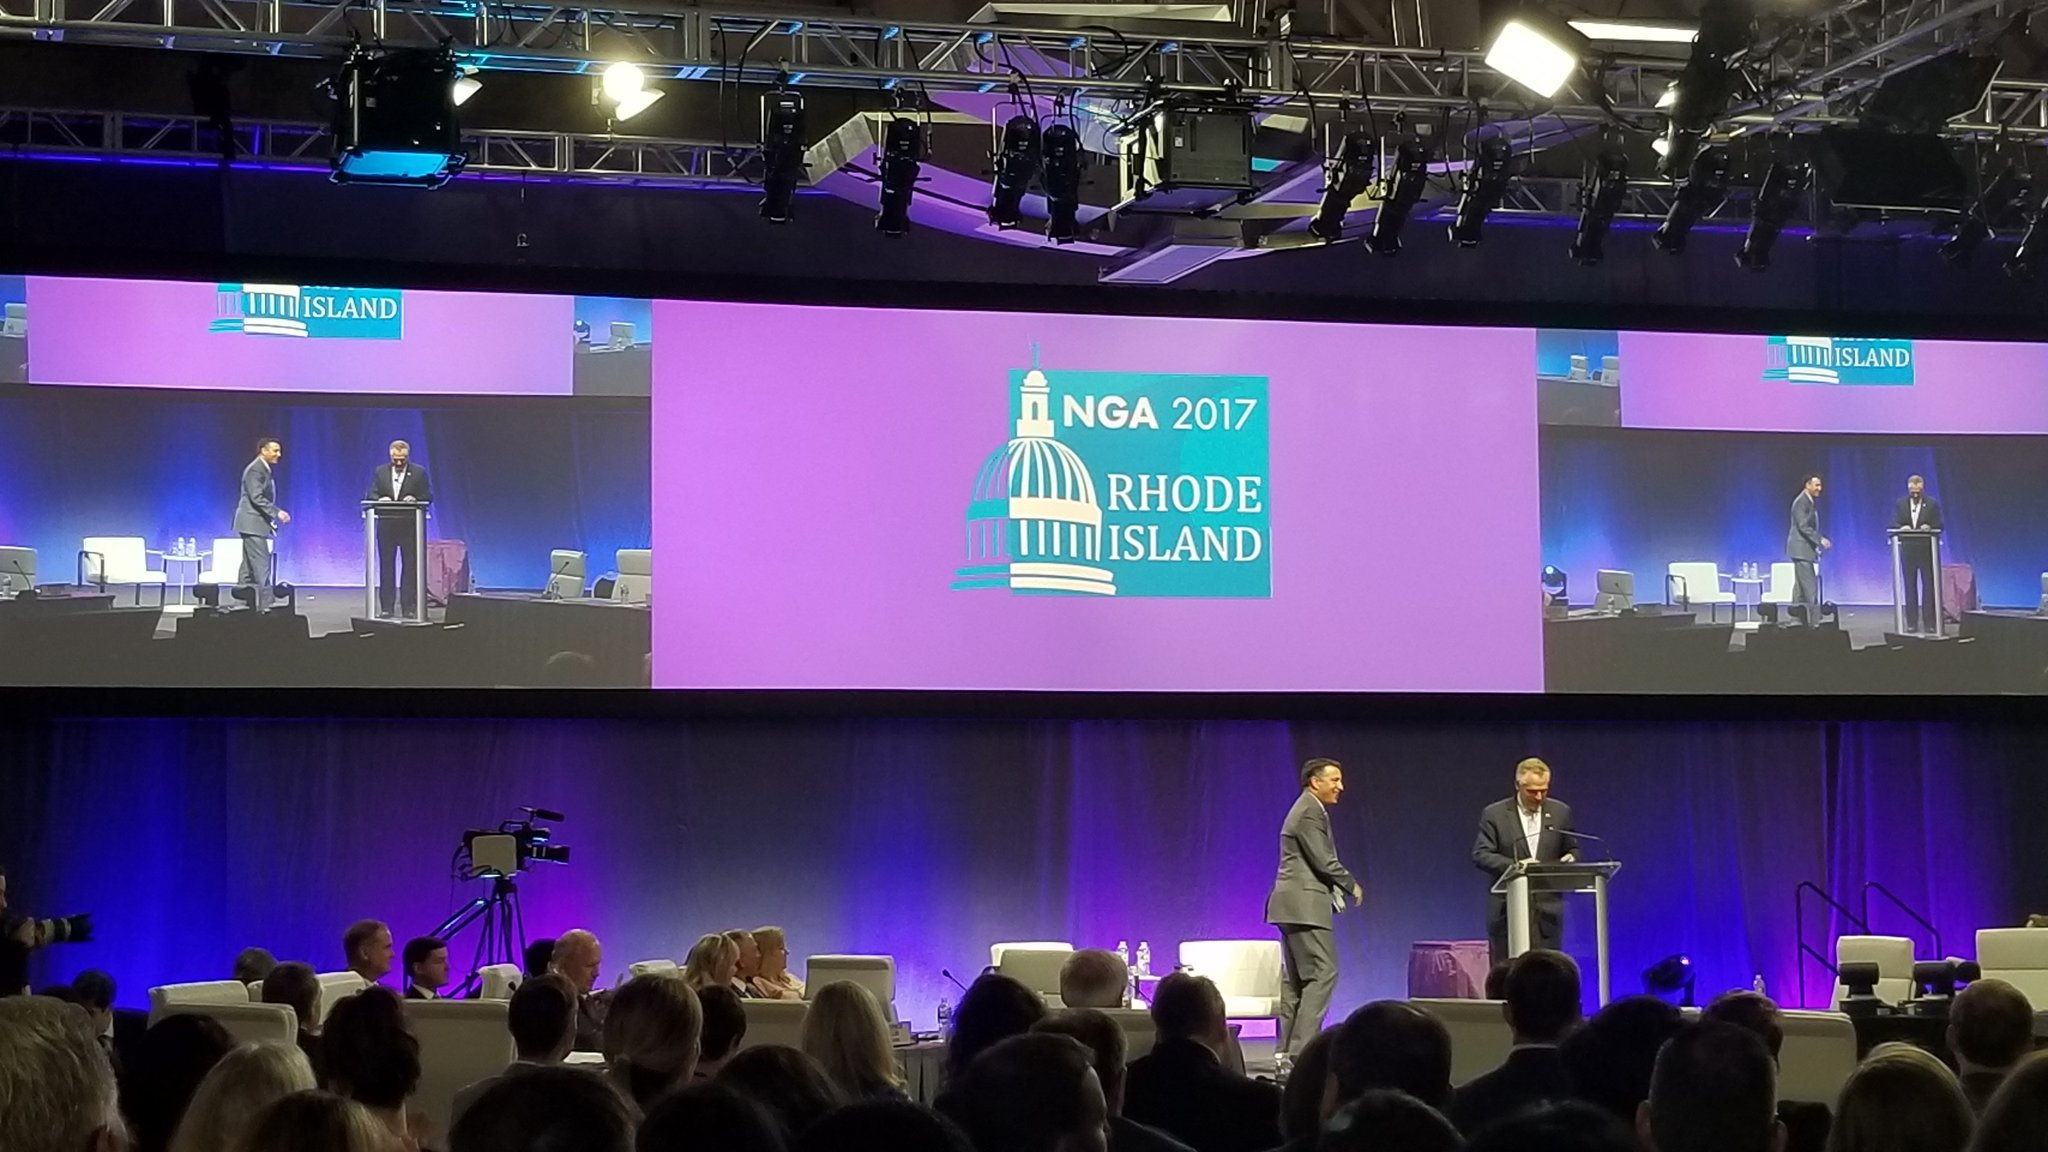 .@TerryMcAuliffe passes @NatlGovsAssoc gavel to @GovSandoval in the most Sandoval-appropriate way possible - via drone delivery #NGA https://t.co/ZYPhJE9l8s